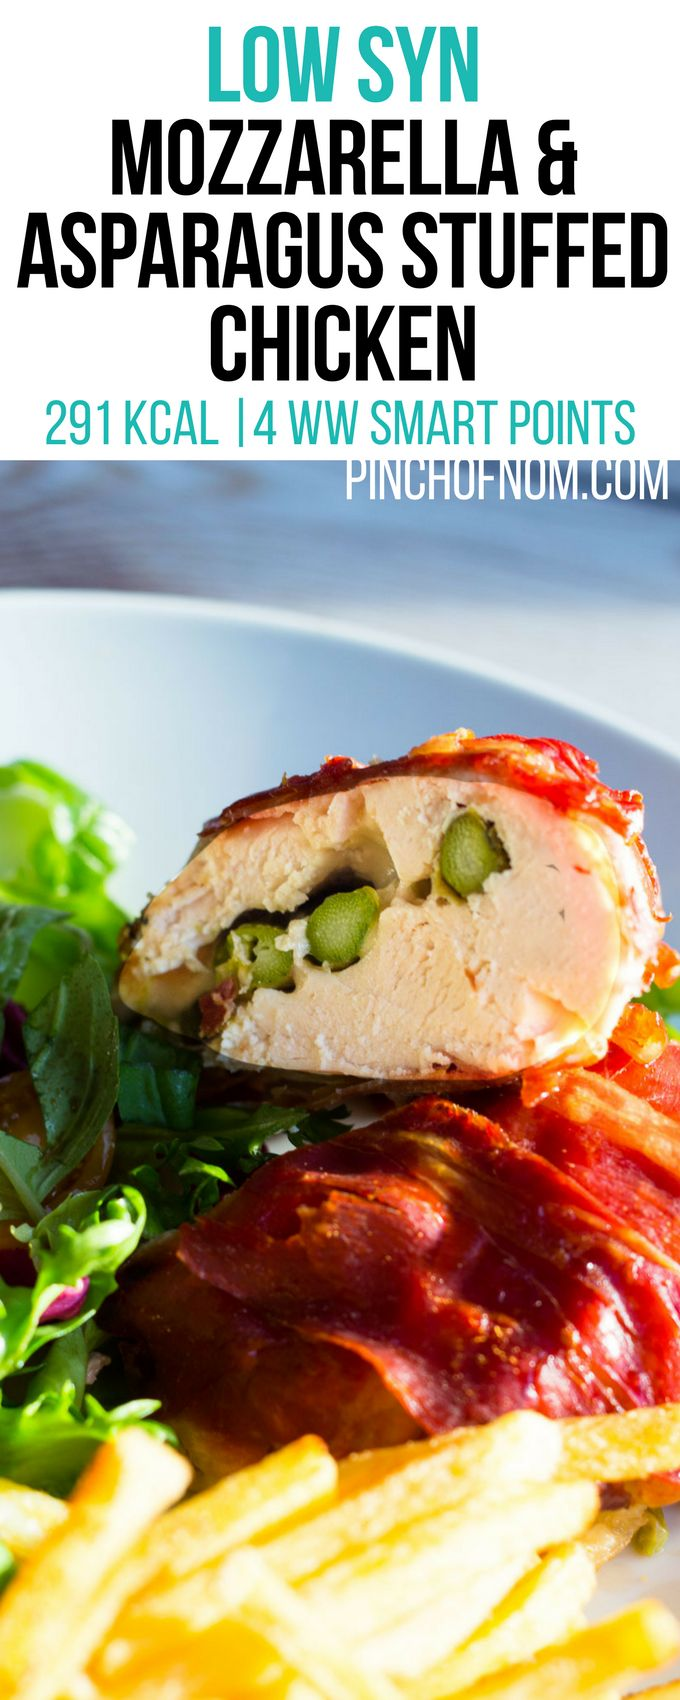 Low Syn Mozzarella & Asparagus Stuffed Chicken | Pinch Of Nom Slimming World Recipes     291 kcal | 0.5 Syn | 4 Weight Watchers Smart Points